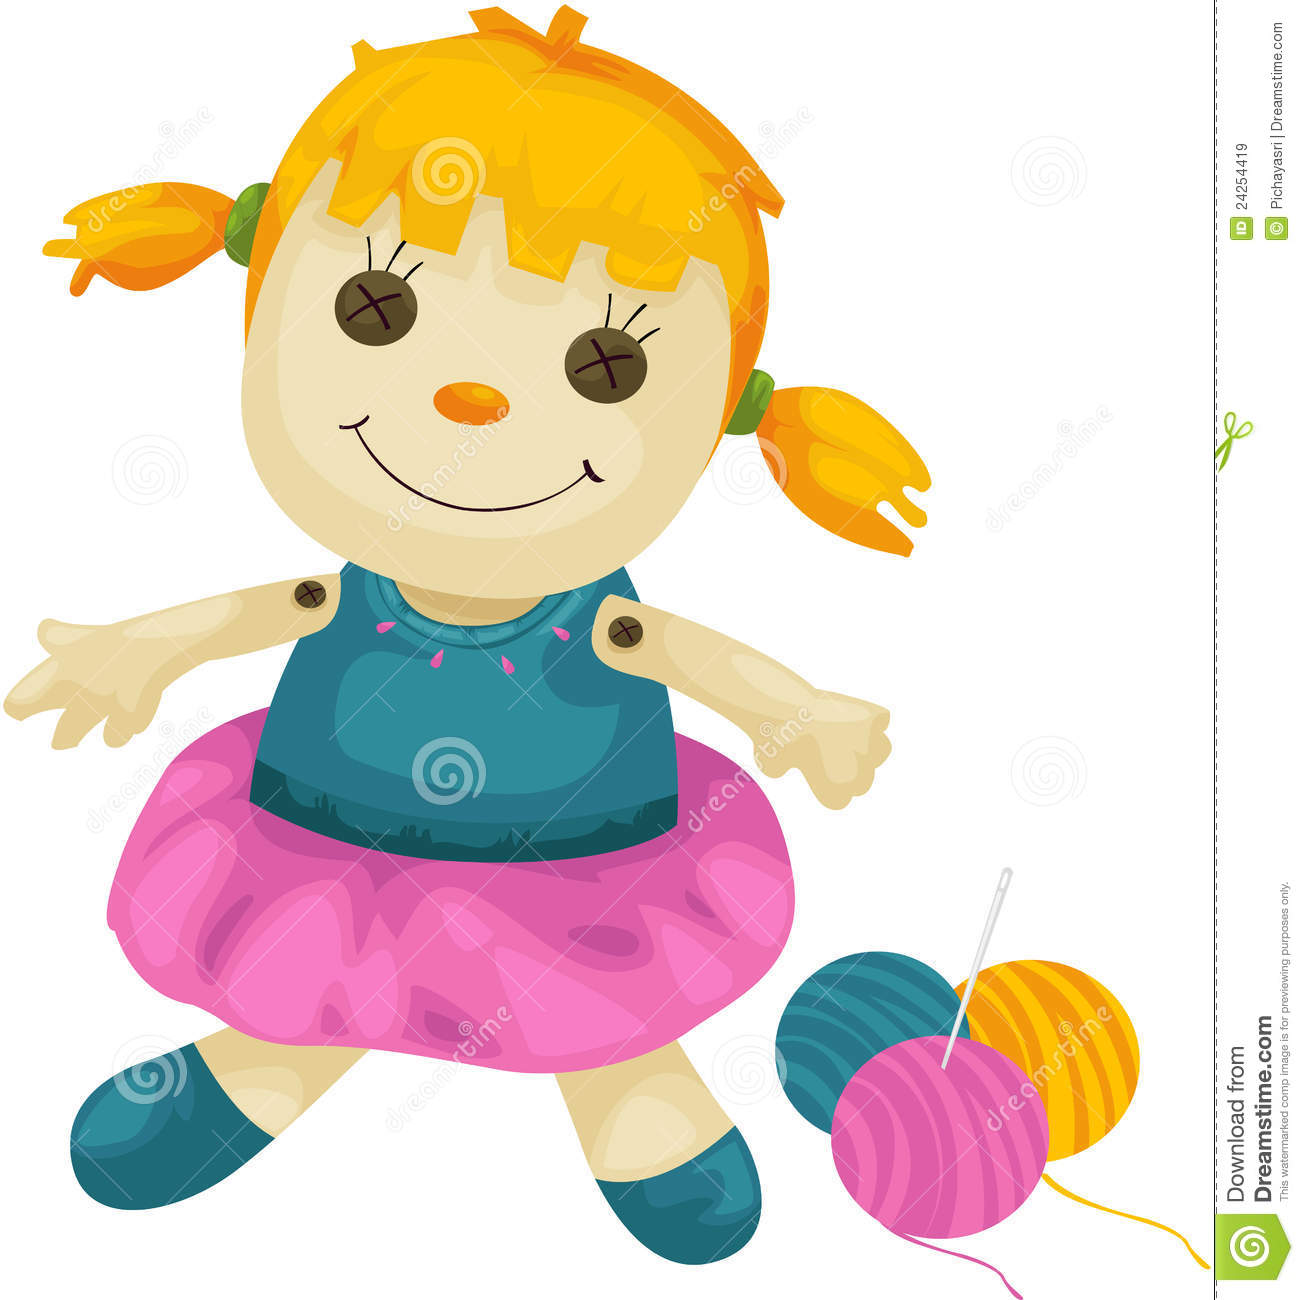 clipart of doll - photo #21